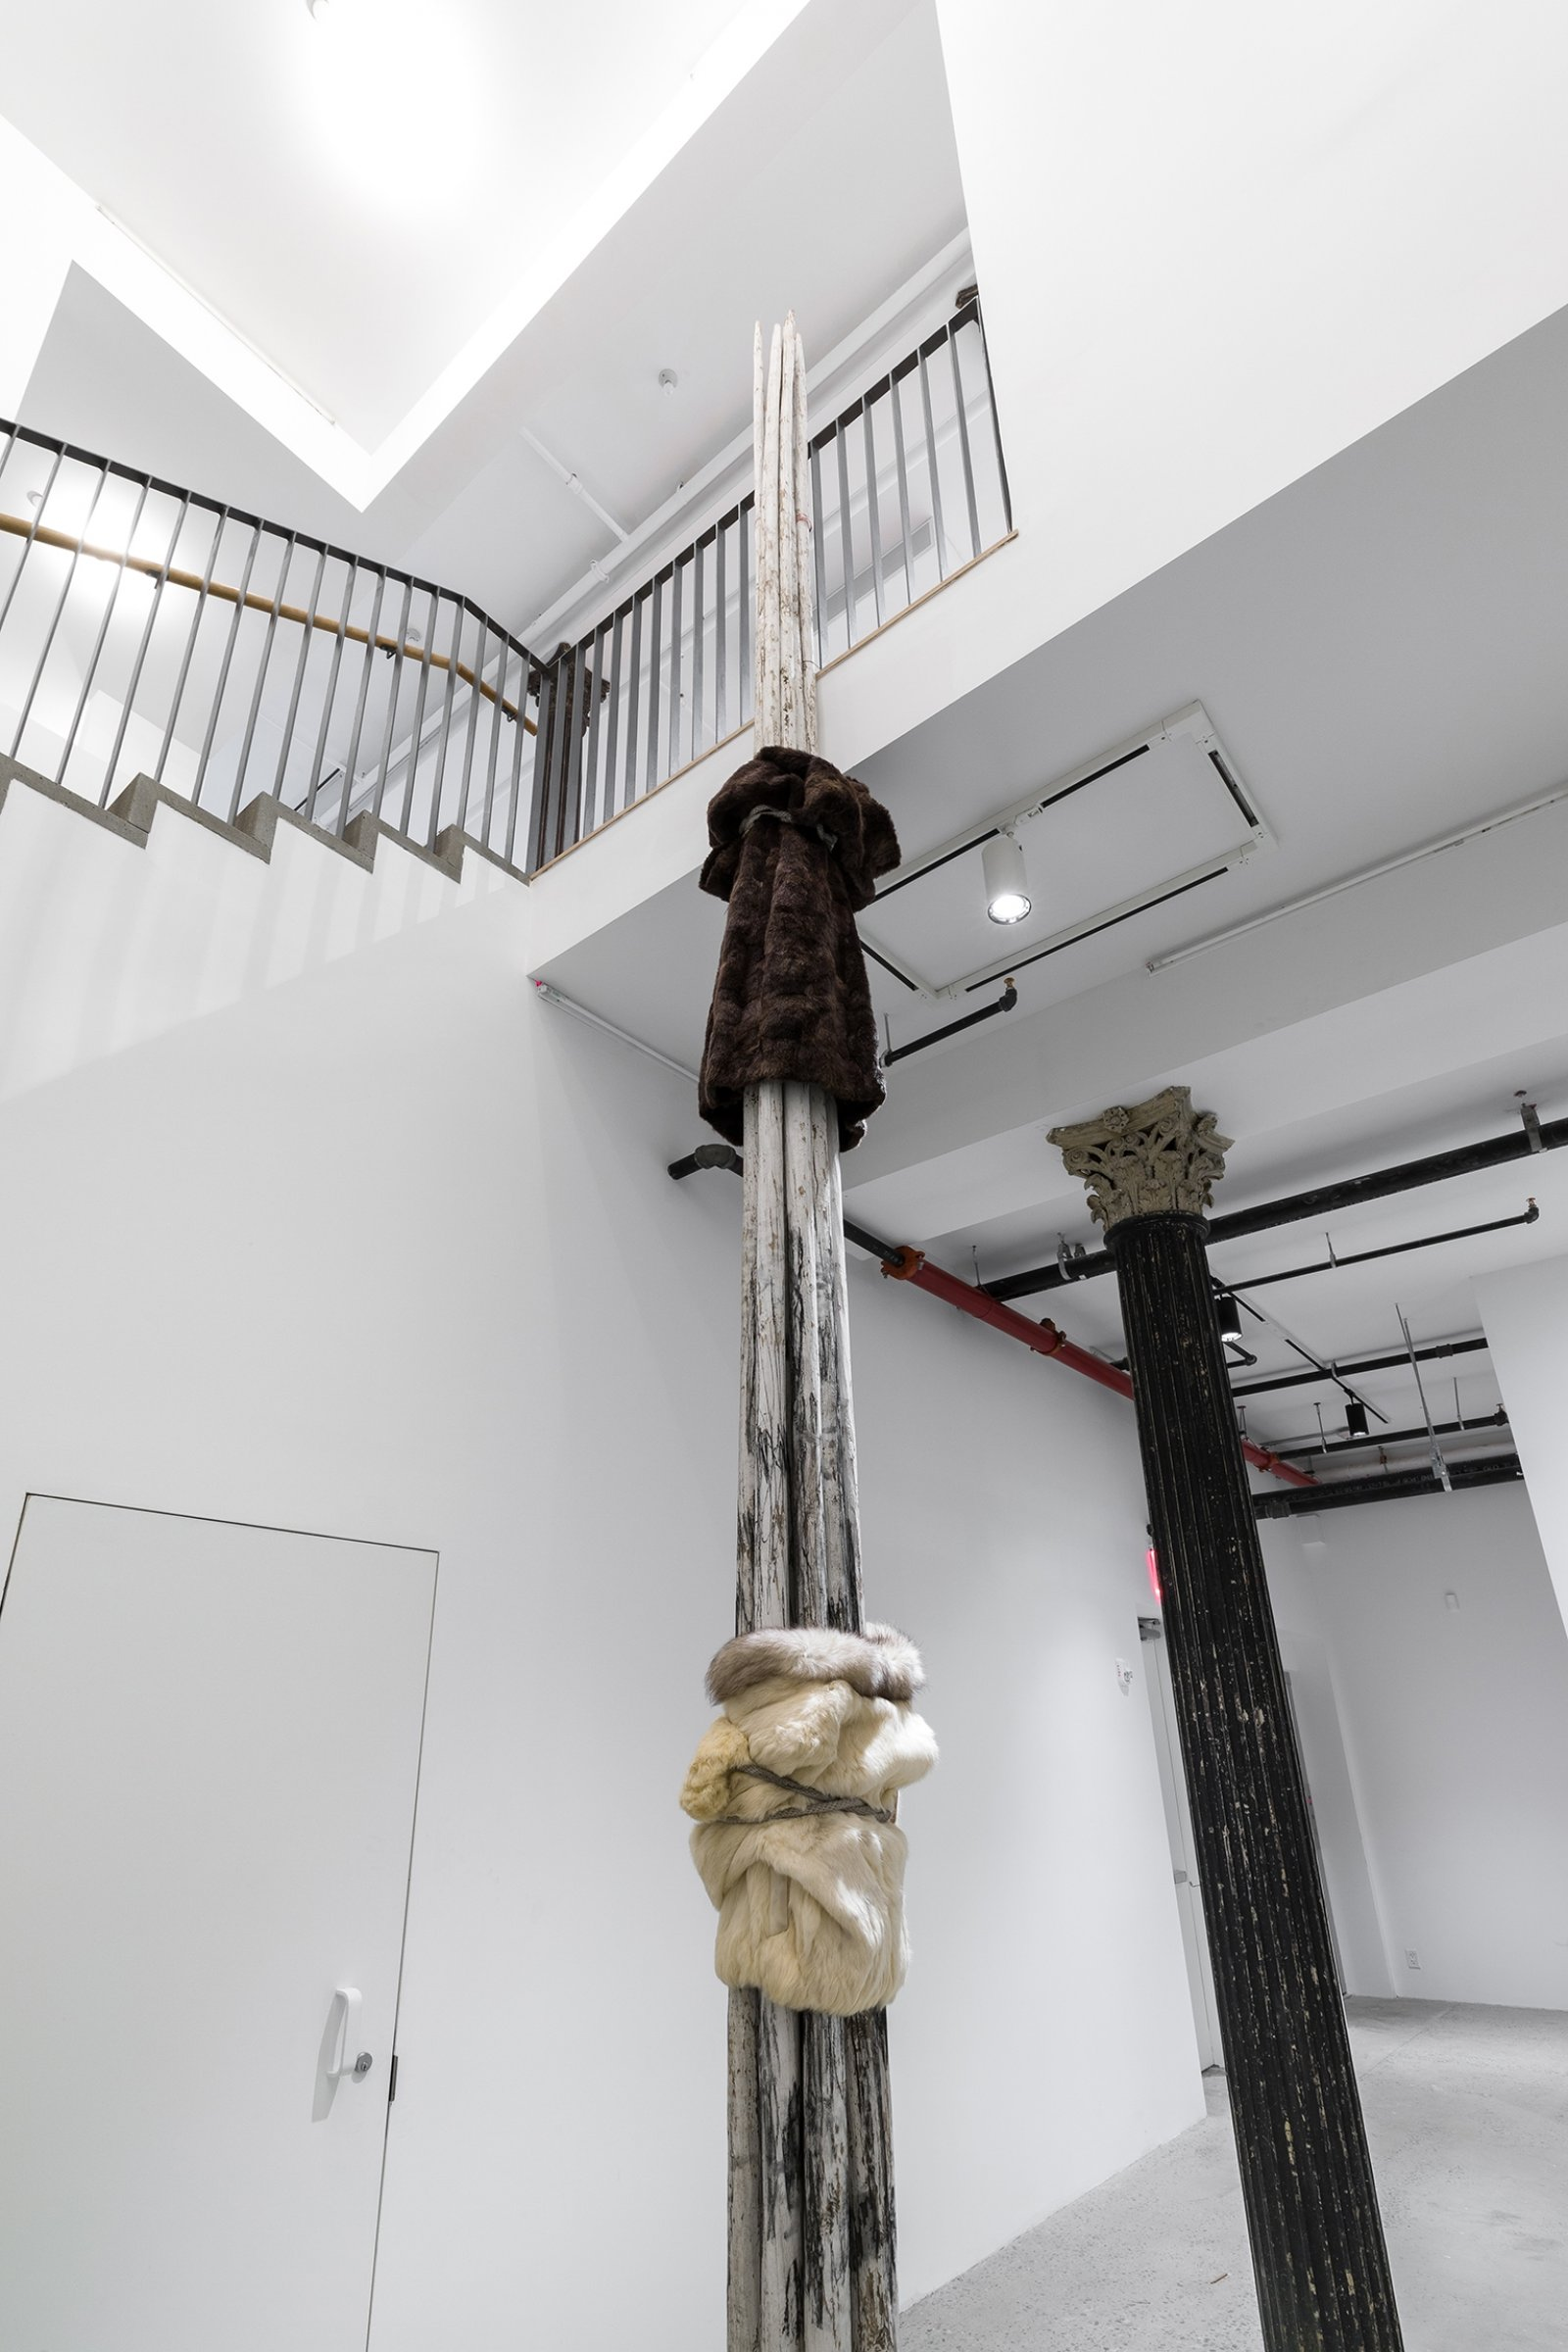 Duane Linklater, landlesscolumnbundle (detail), 2019, teepee poles, white paint, charcoal, rabbit fur coat, mink fur coat, rope, 243 x 10 x 10 in. (617 x 25 x 25 cm). Installation view, Artists Space, New York, USA, 2019